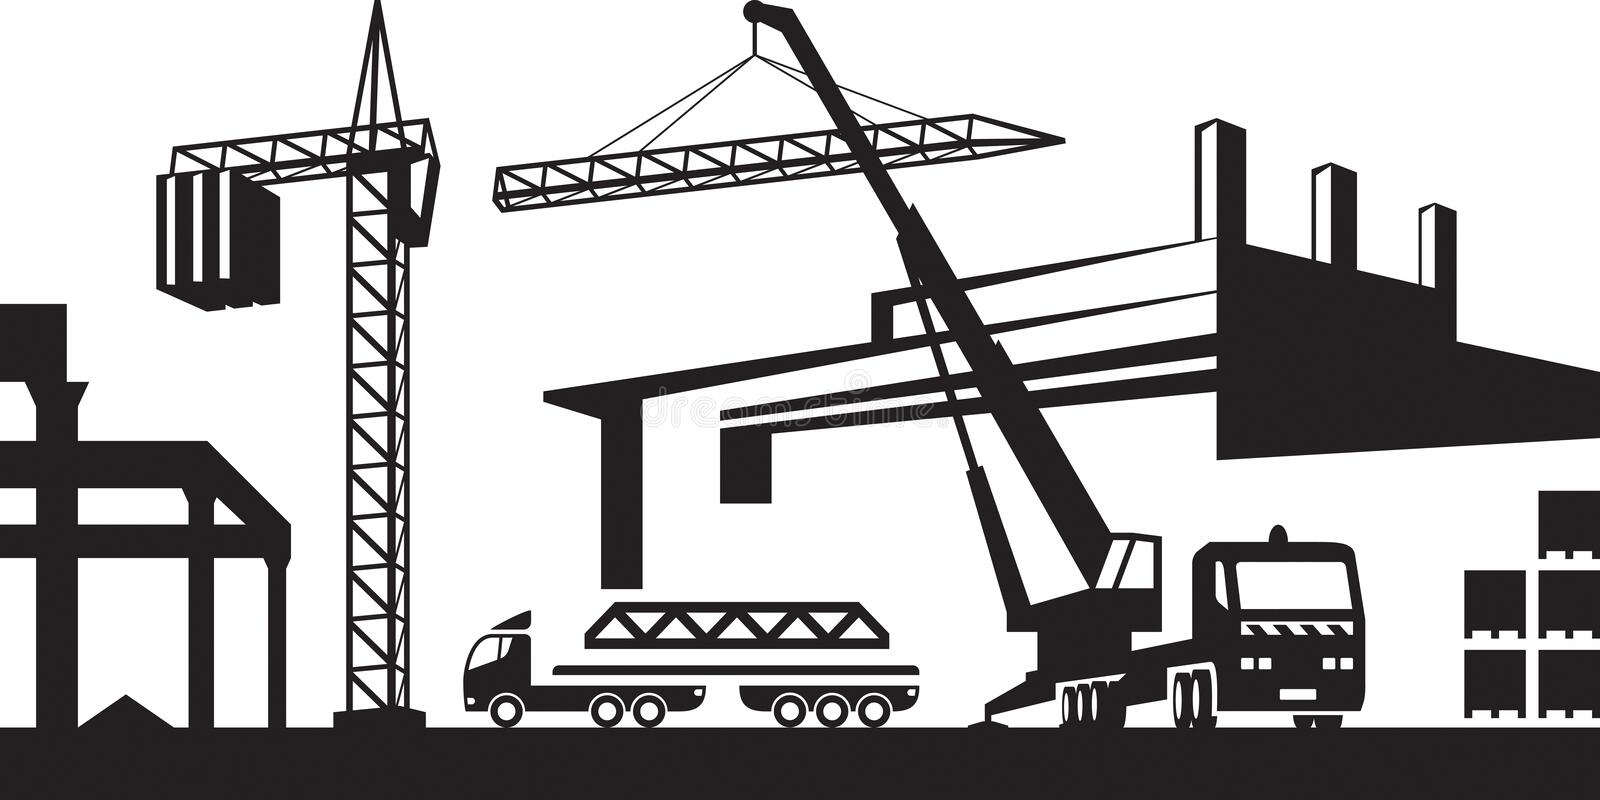 Installation de la grue sur le chantier de construction illustration de vecteur